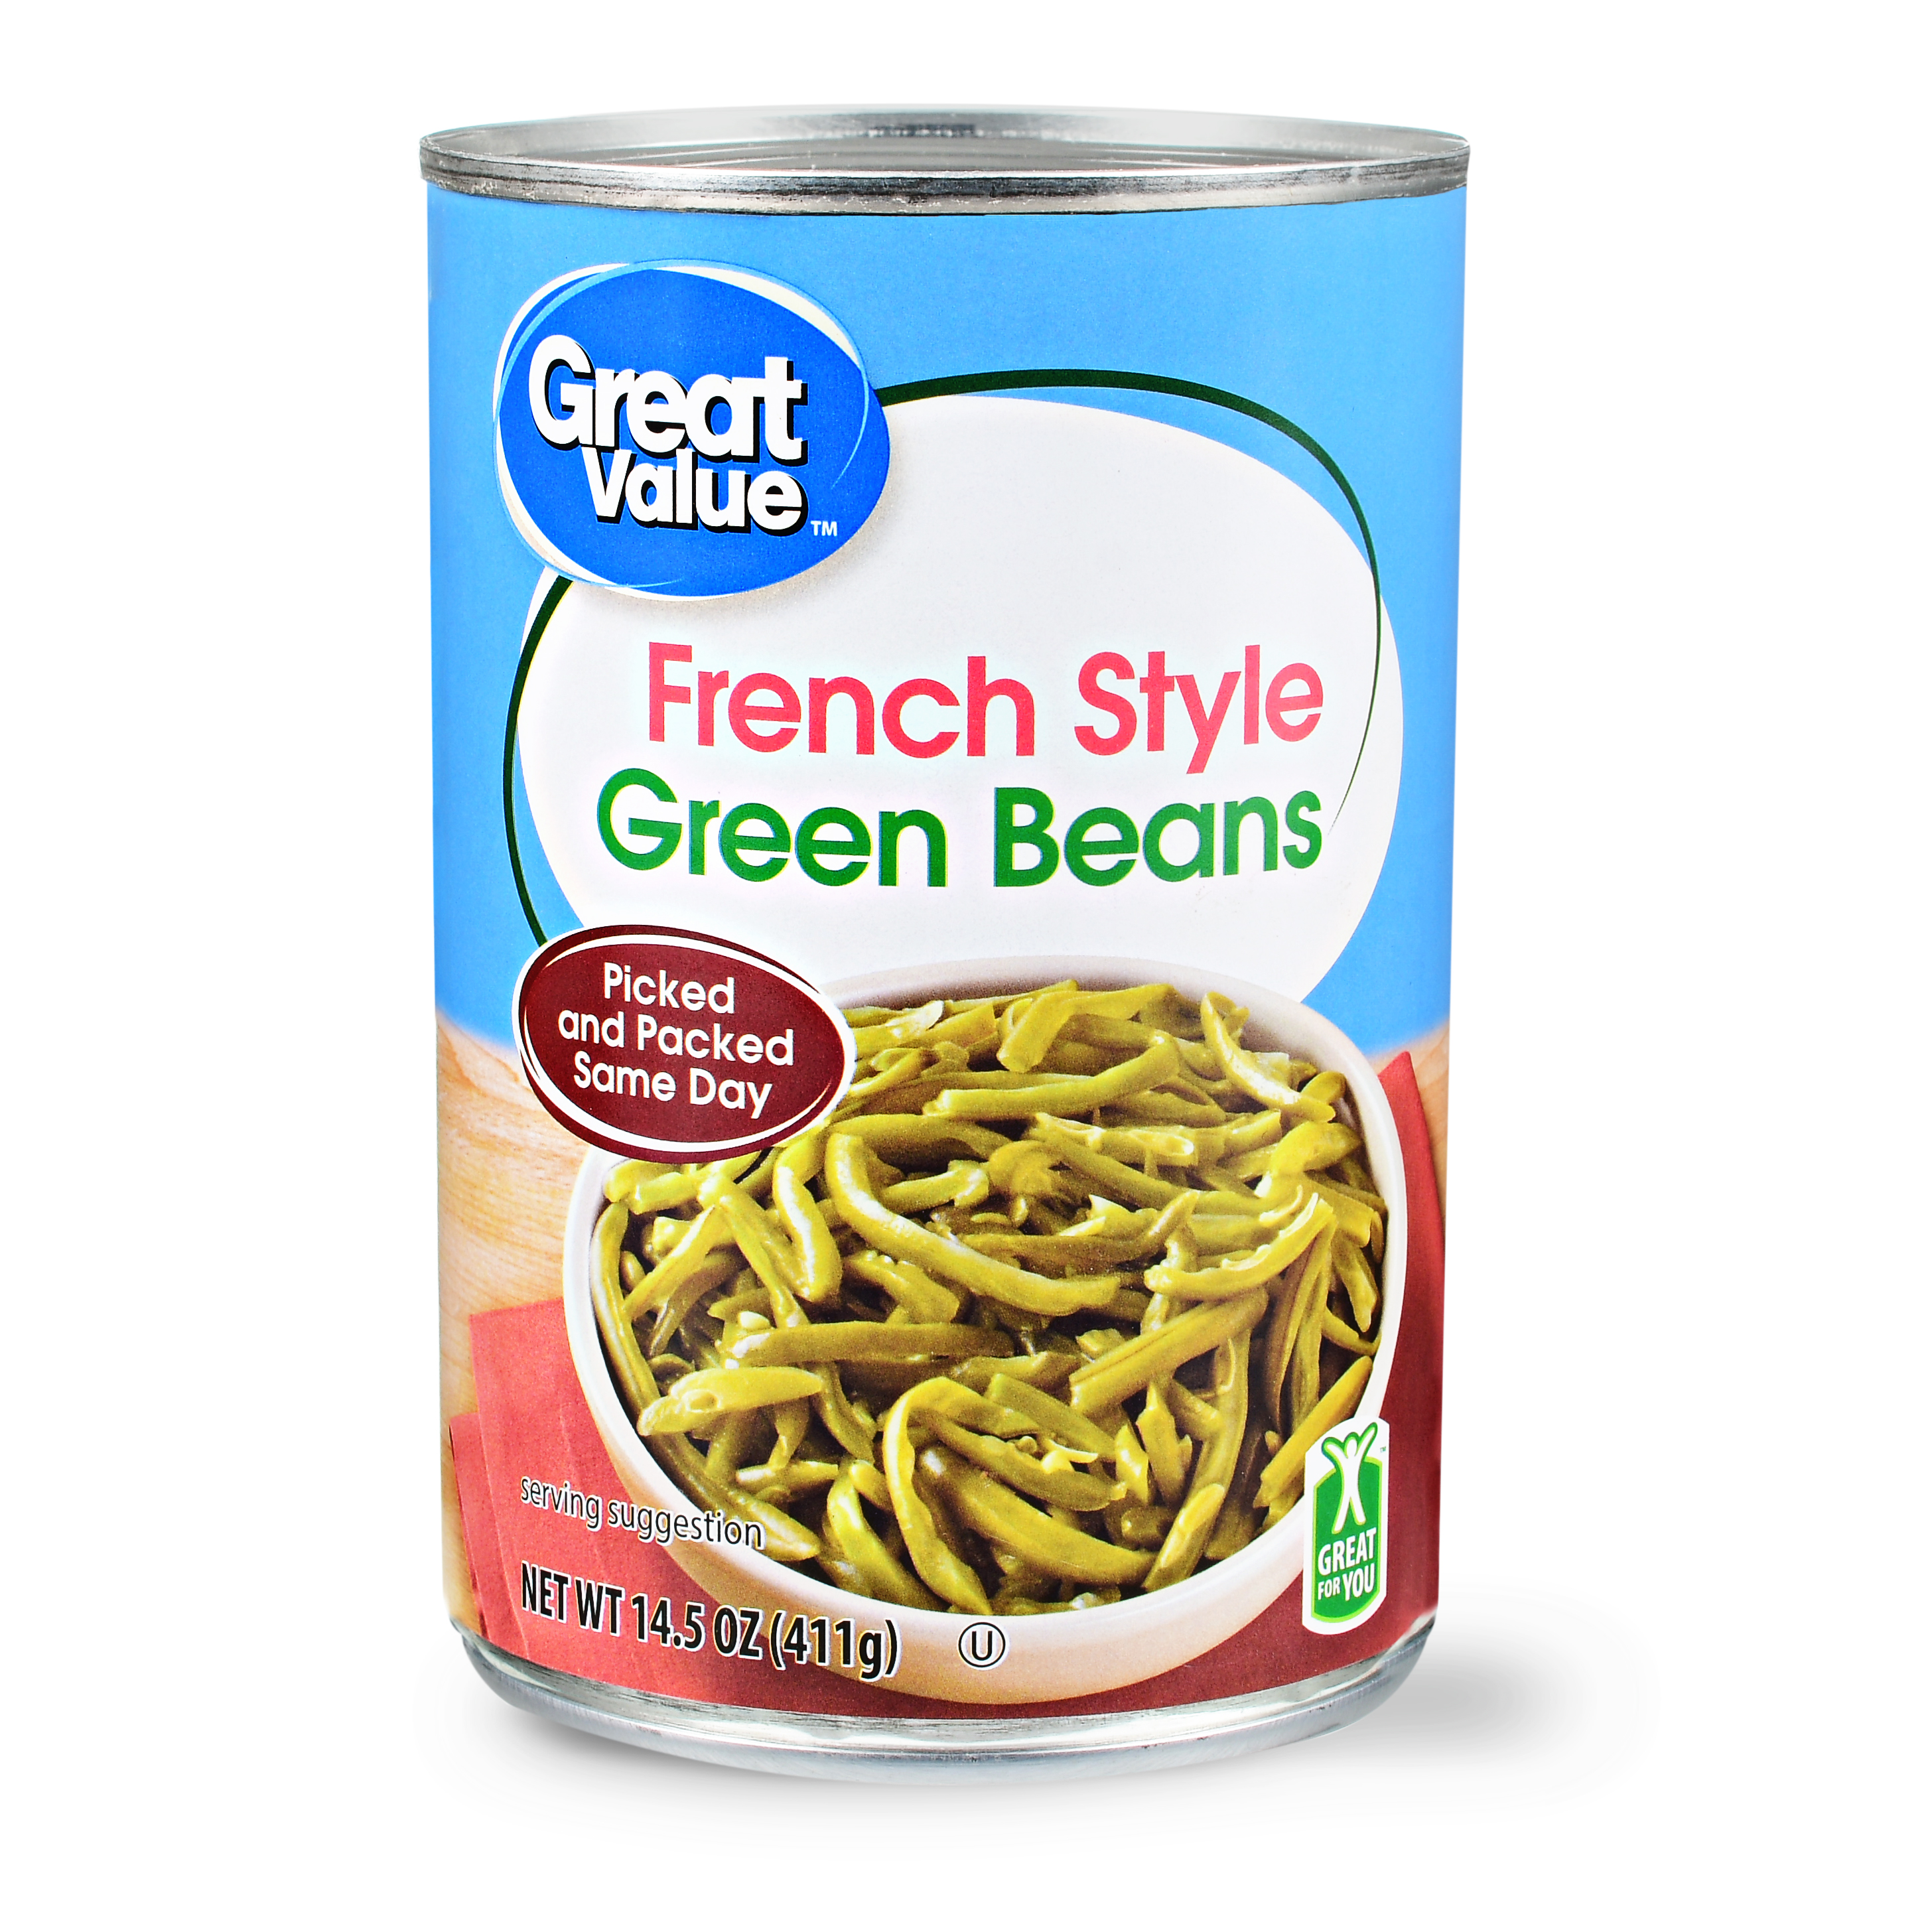 Great Value French Style Green Beans, 14.5 oz